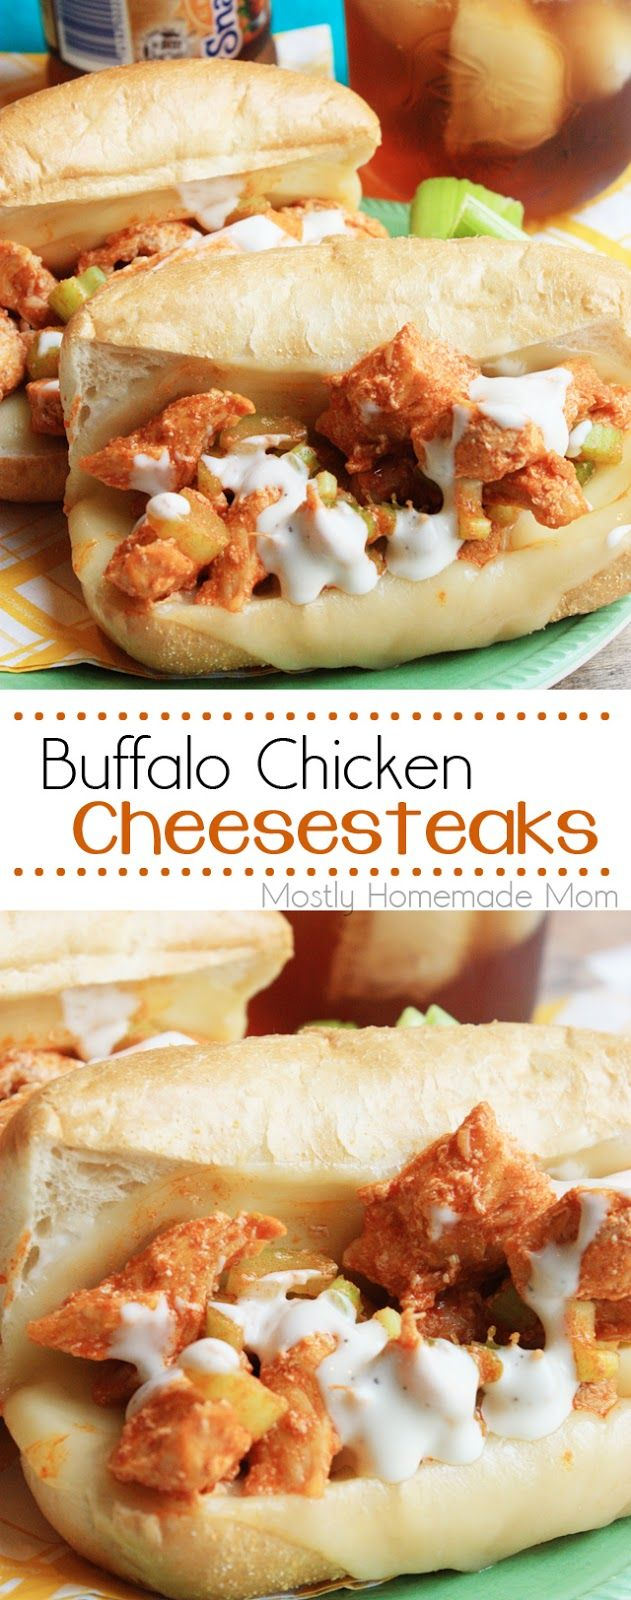 Buffalo Chicken Cheesesteaks - Sauteed chicken strips mixed with chopped celery and hot sauce and baked with provolone cheese and ranch dressing on hoagie rolls. Perfect with a glass of iced tea!